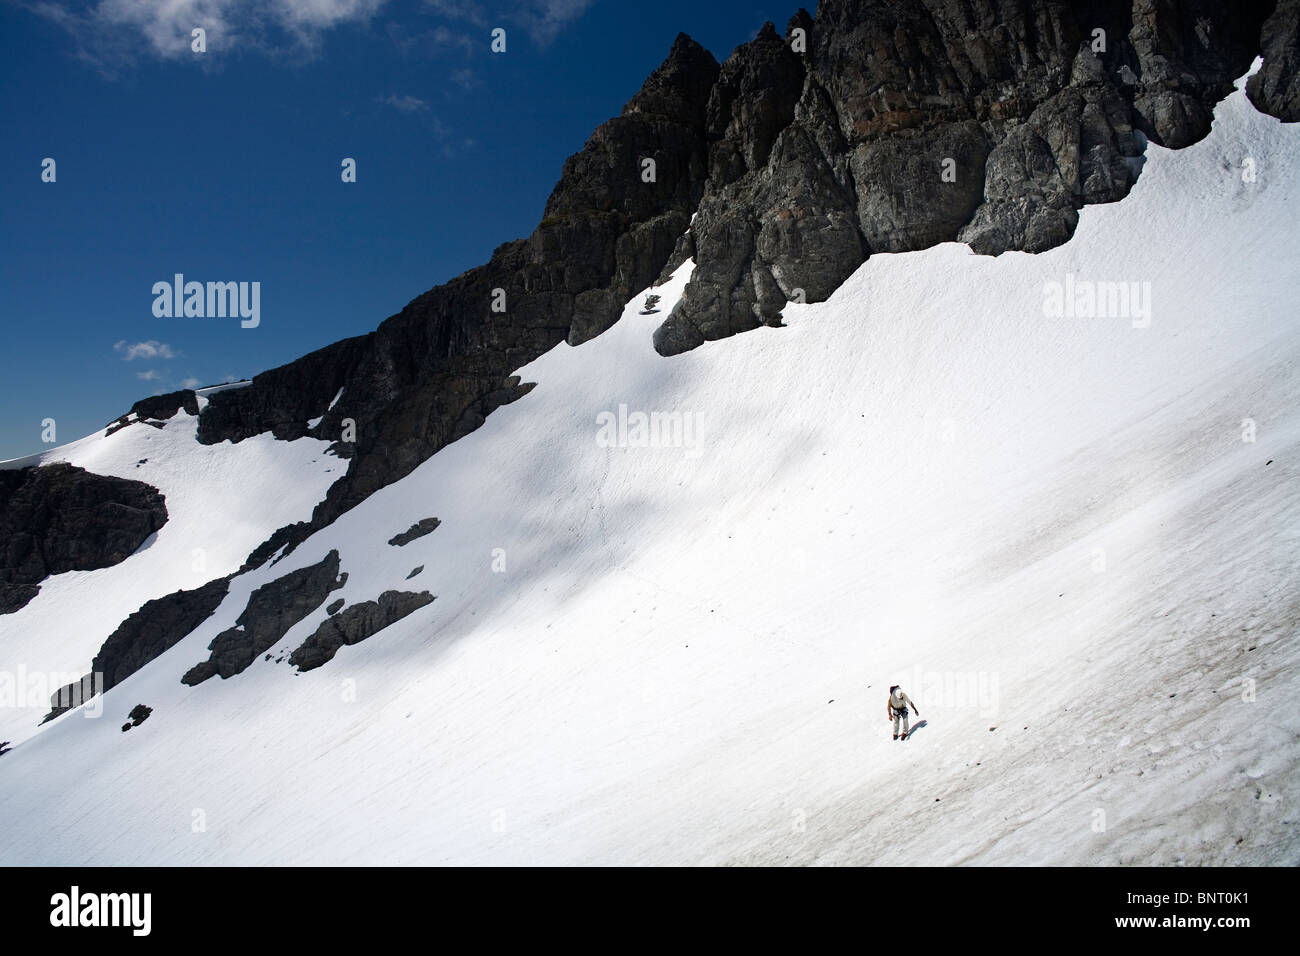 Man appears small on large snowfield in the mountains. - Stock Image